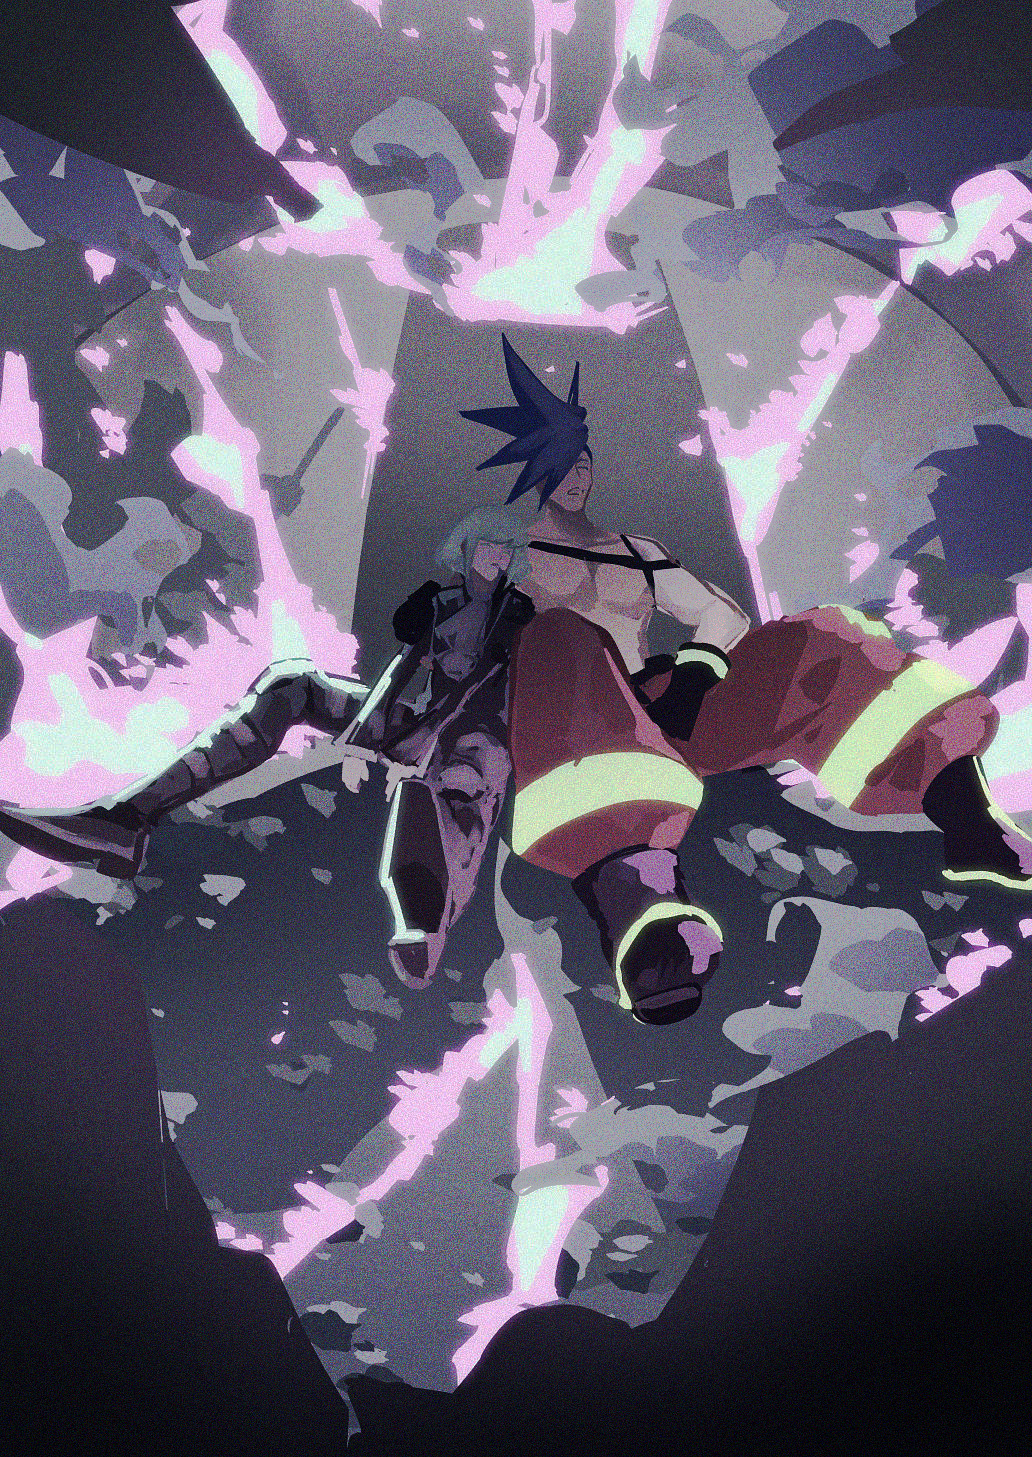 2boys blue_hair fire galo_thymos green_fire green_hair highres ke889 male_focus multiple_boys muted_color promare purple_fire shirtless sitting sleeping static